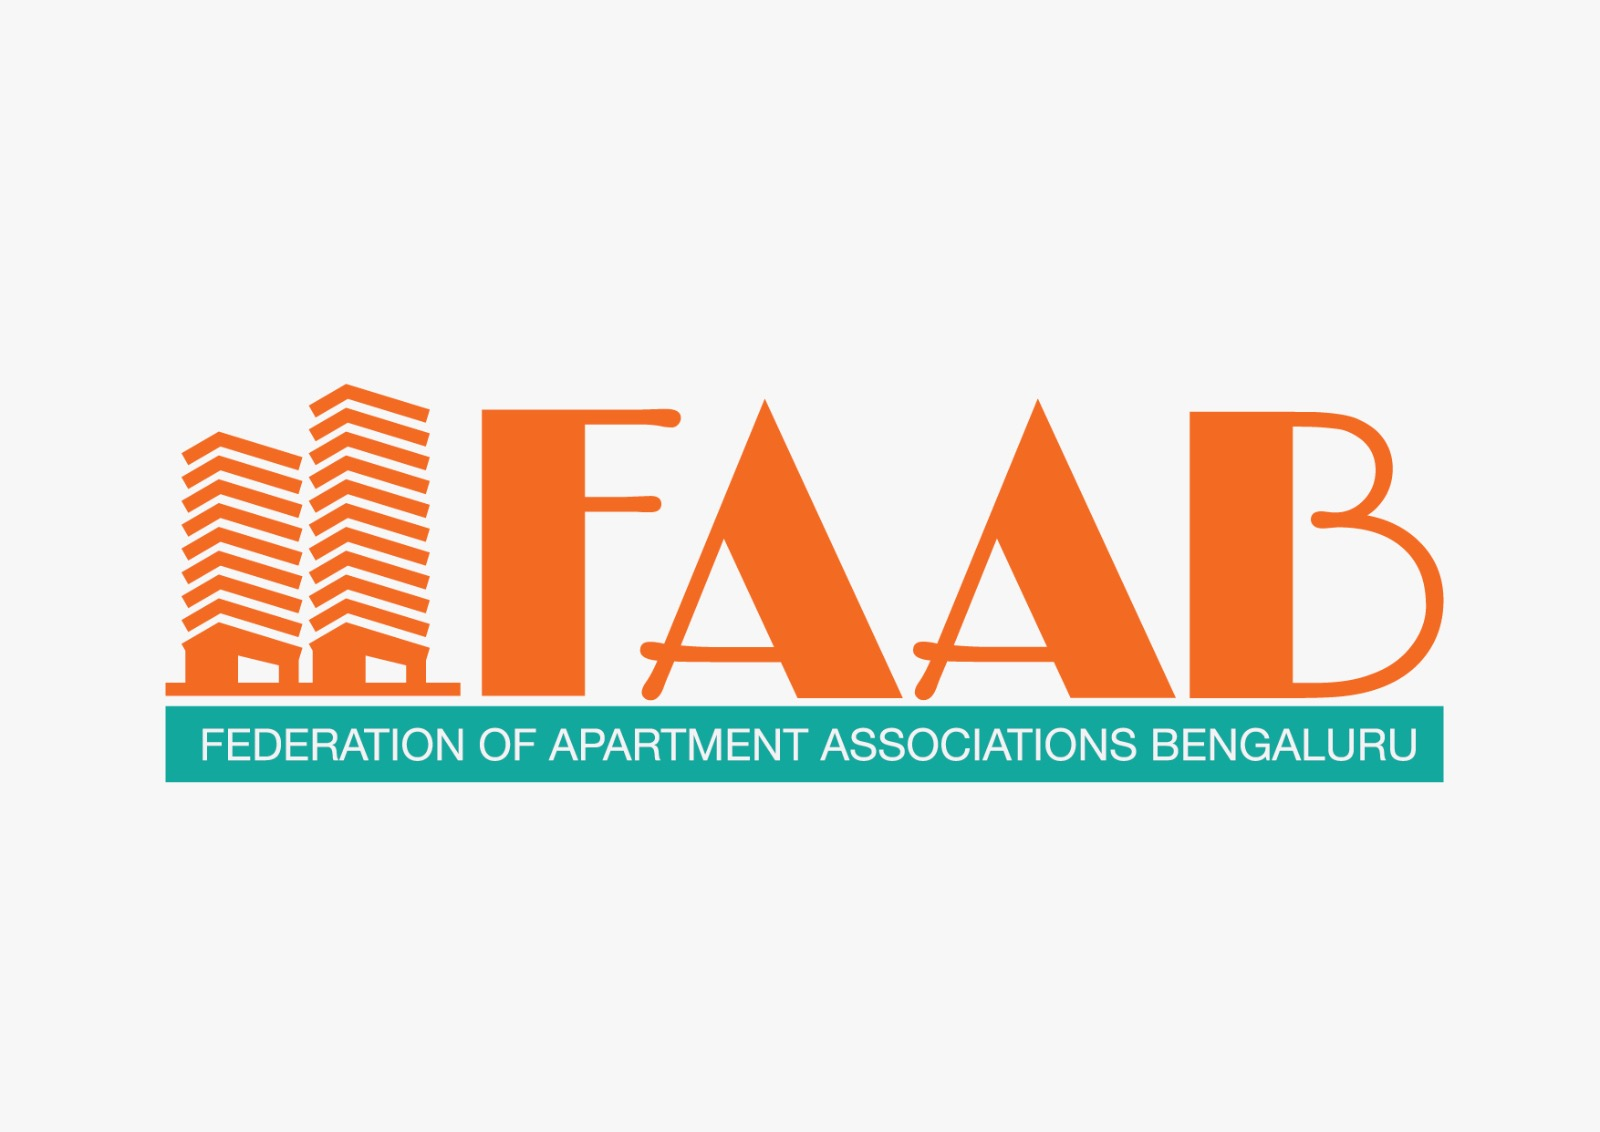 Federation of Apartment Associations Bengaluru